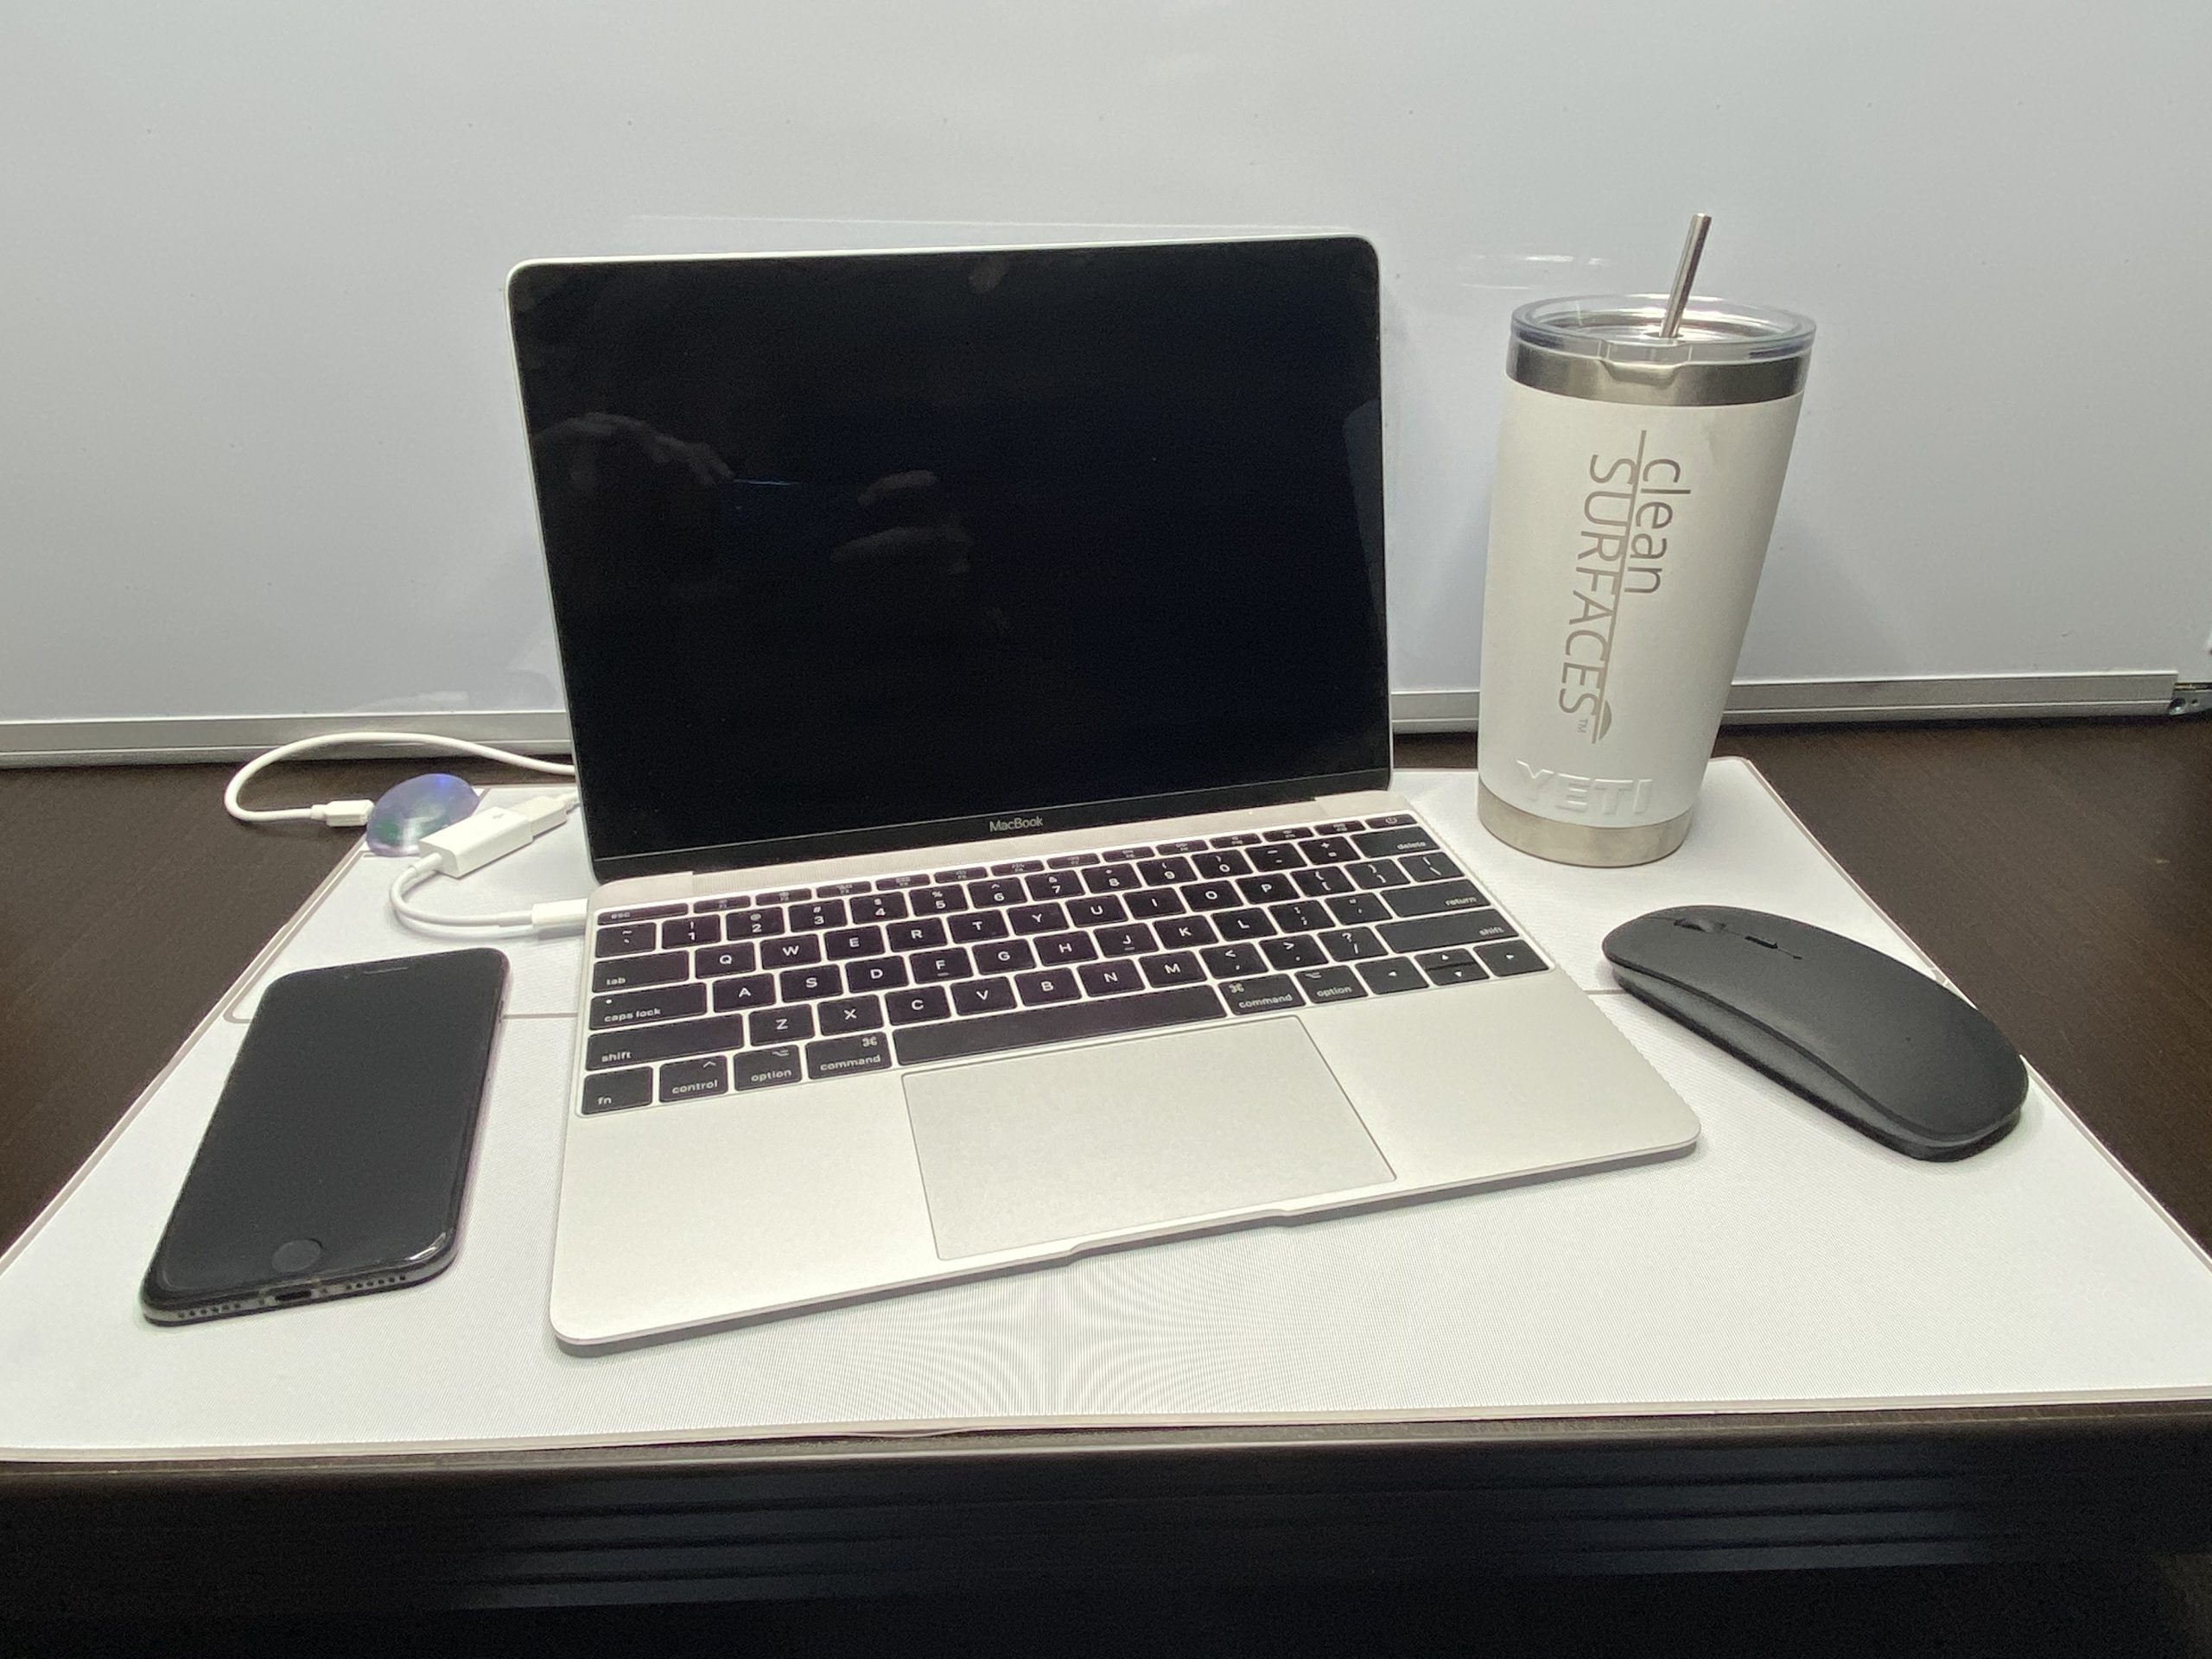 Desk_CleanSurface_Gen2_IMG_3649